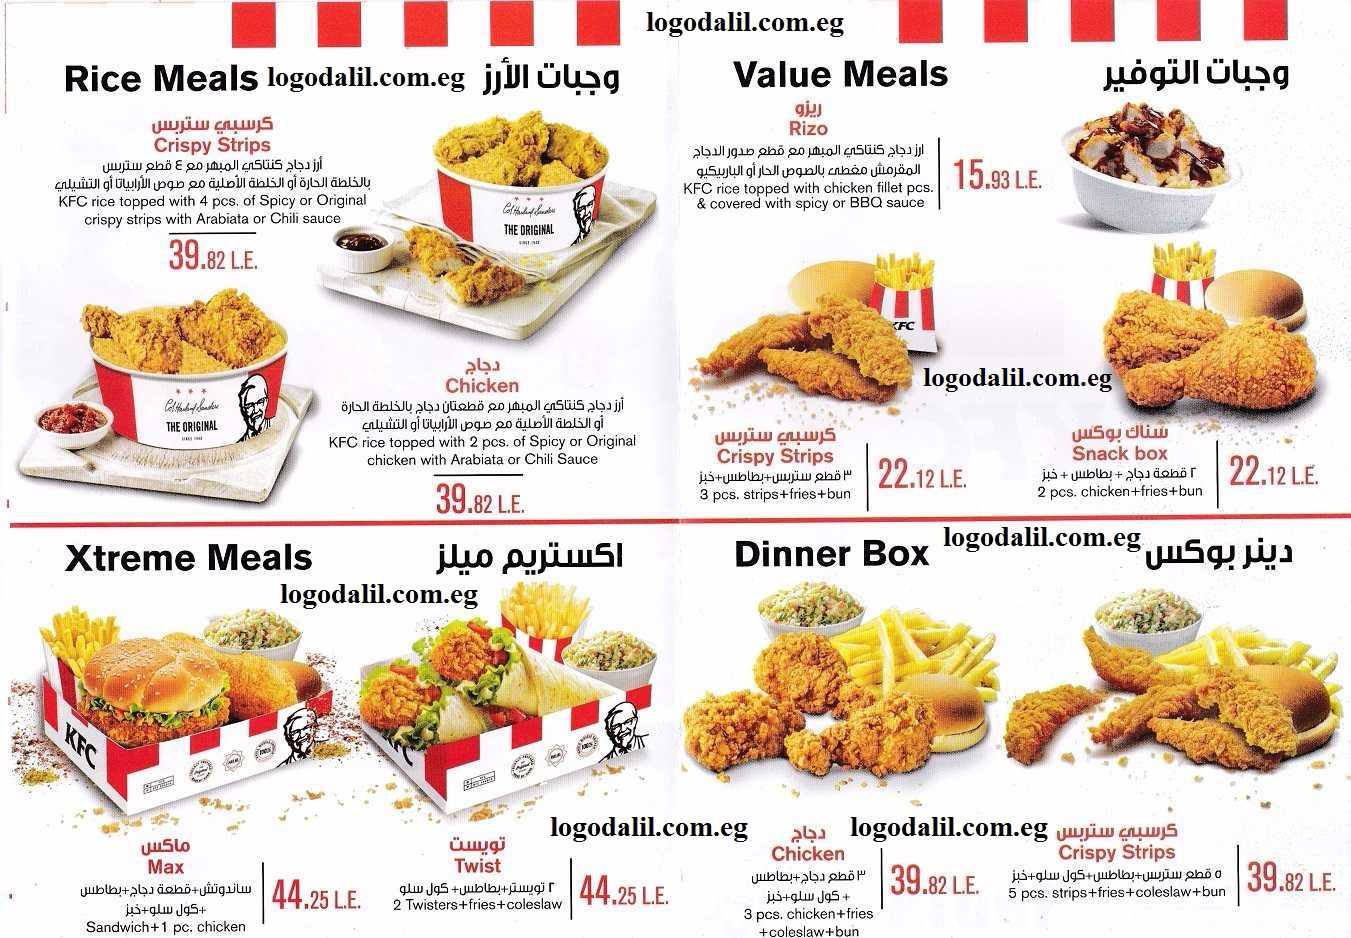 The Zinger burger is the highest selling menu item. KFC has adapted its menu to suit local tastes, with items such as rice congee, egg custard tarts and tree fungus salad, with an average of 50 different menu .